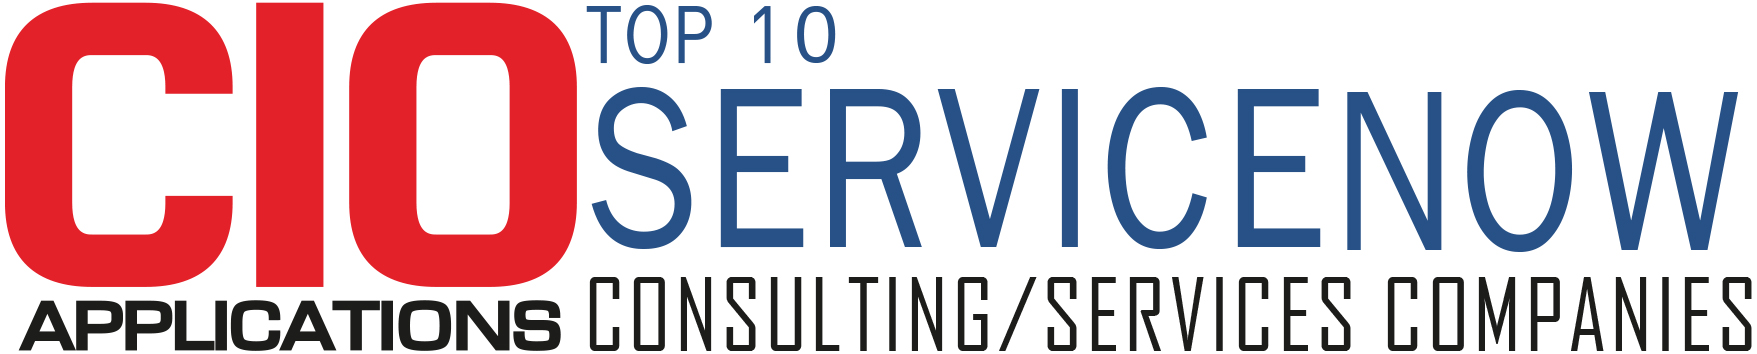 Top 10 ServiceNow Consulting/Services Companies - 2019